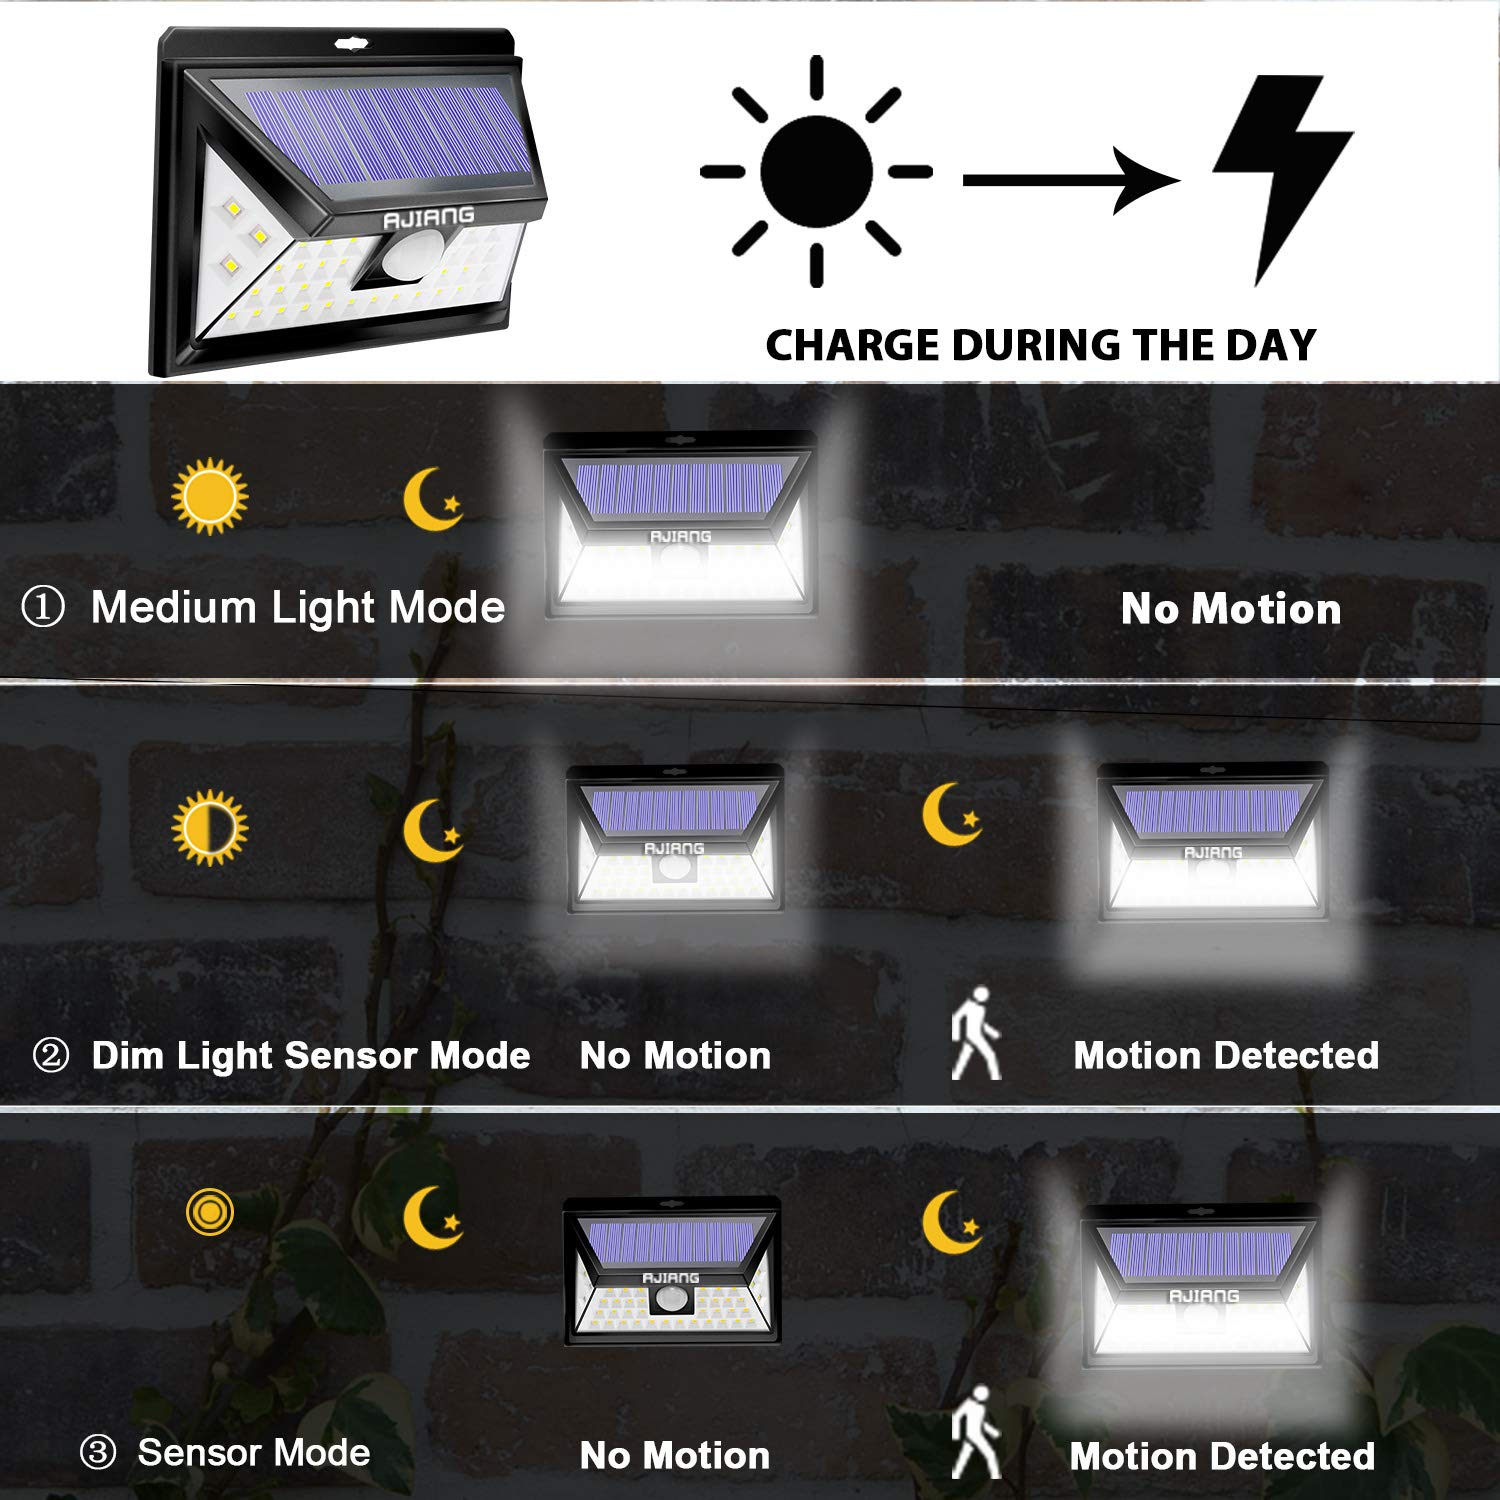 Ajiang Solar Lights Outdoor,Wireless 40 LED Motion Sensor Solar Lights with Wide Lighting Area,Easy Install Waterproof Security Lights for Back Yard,Driveway,Garage,Front Door and More Ennoplus SLW0340